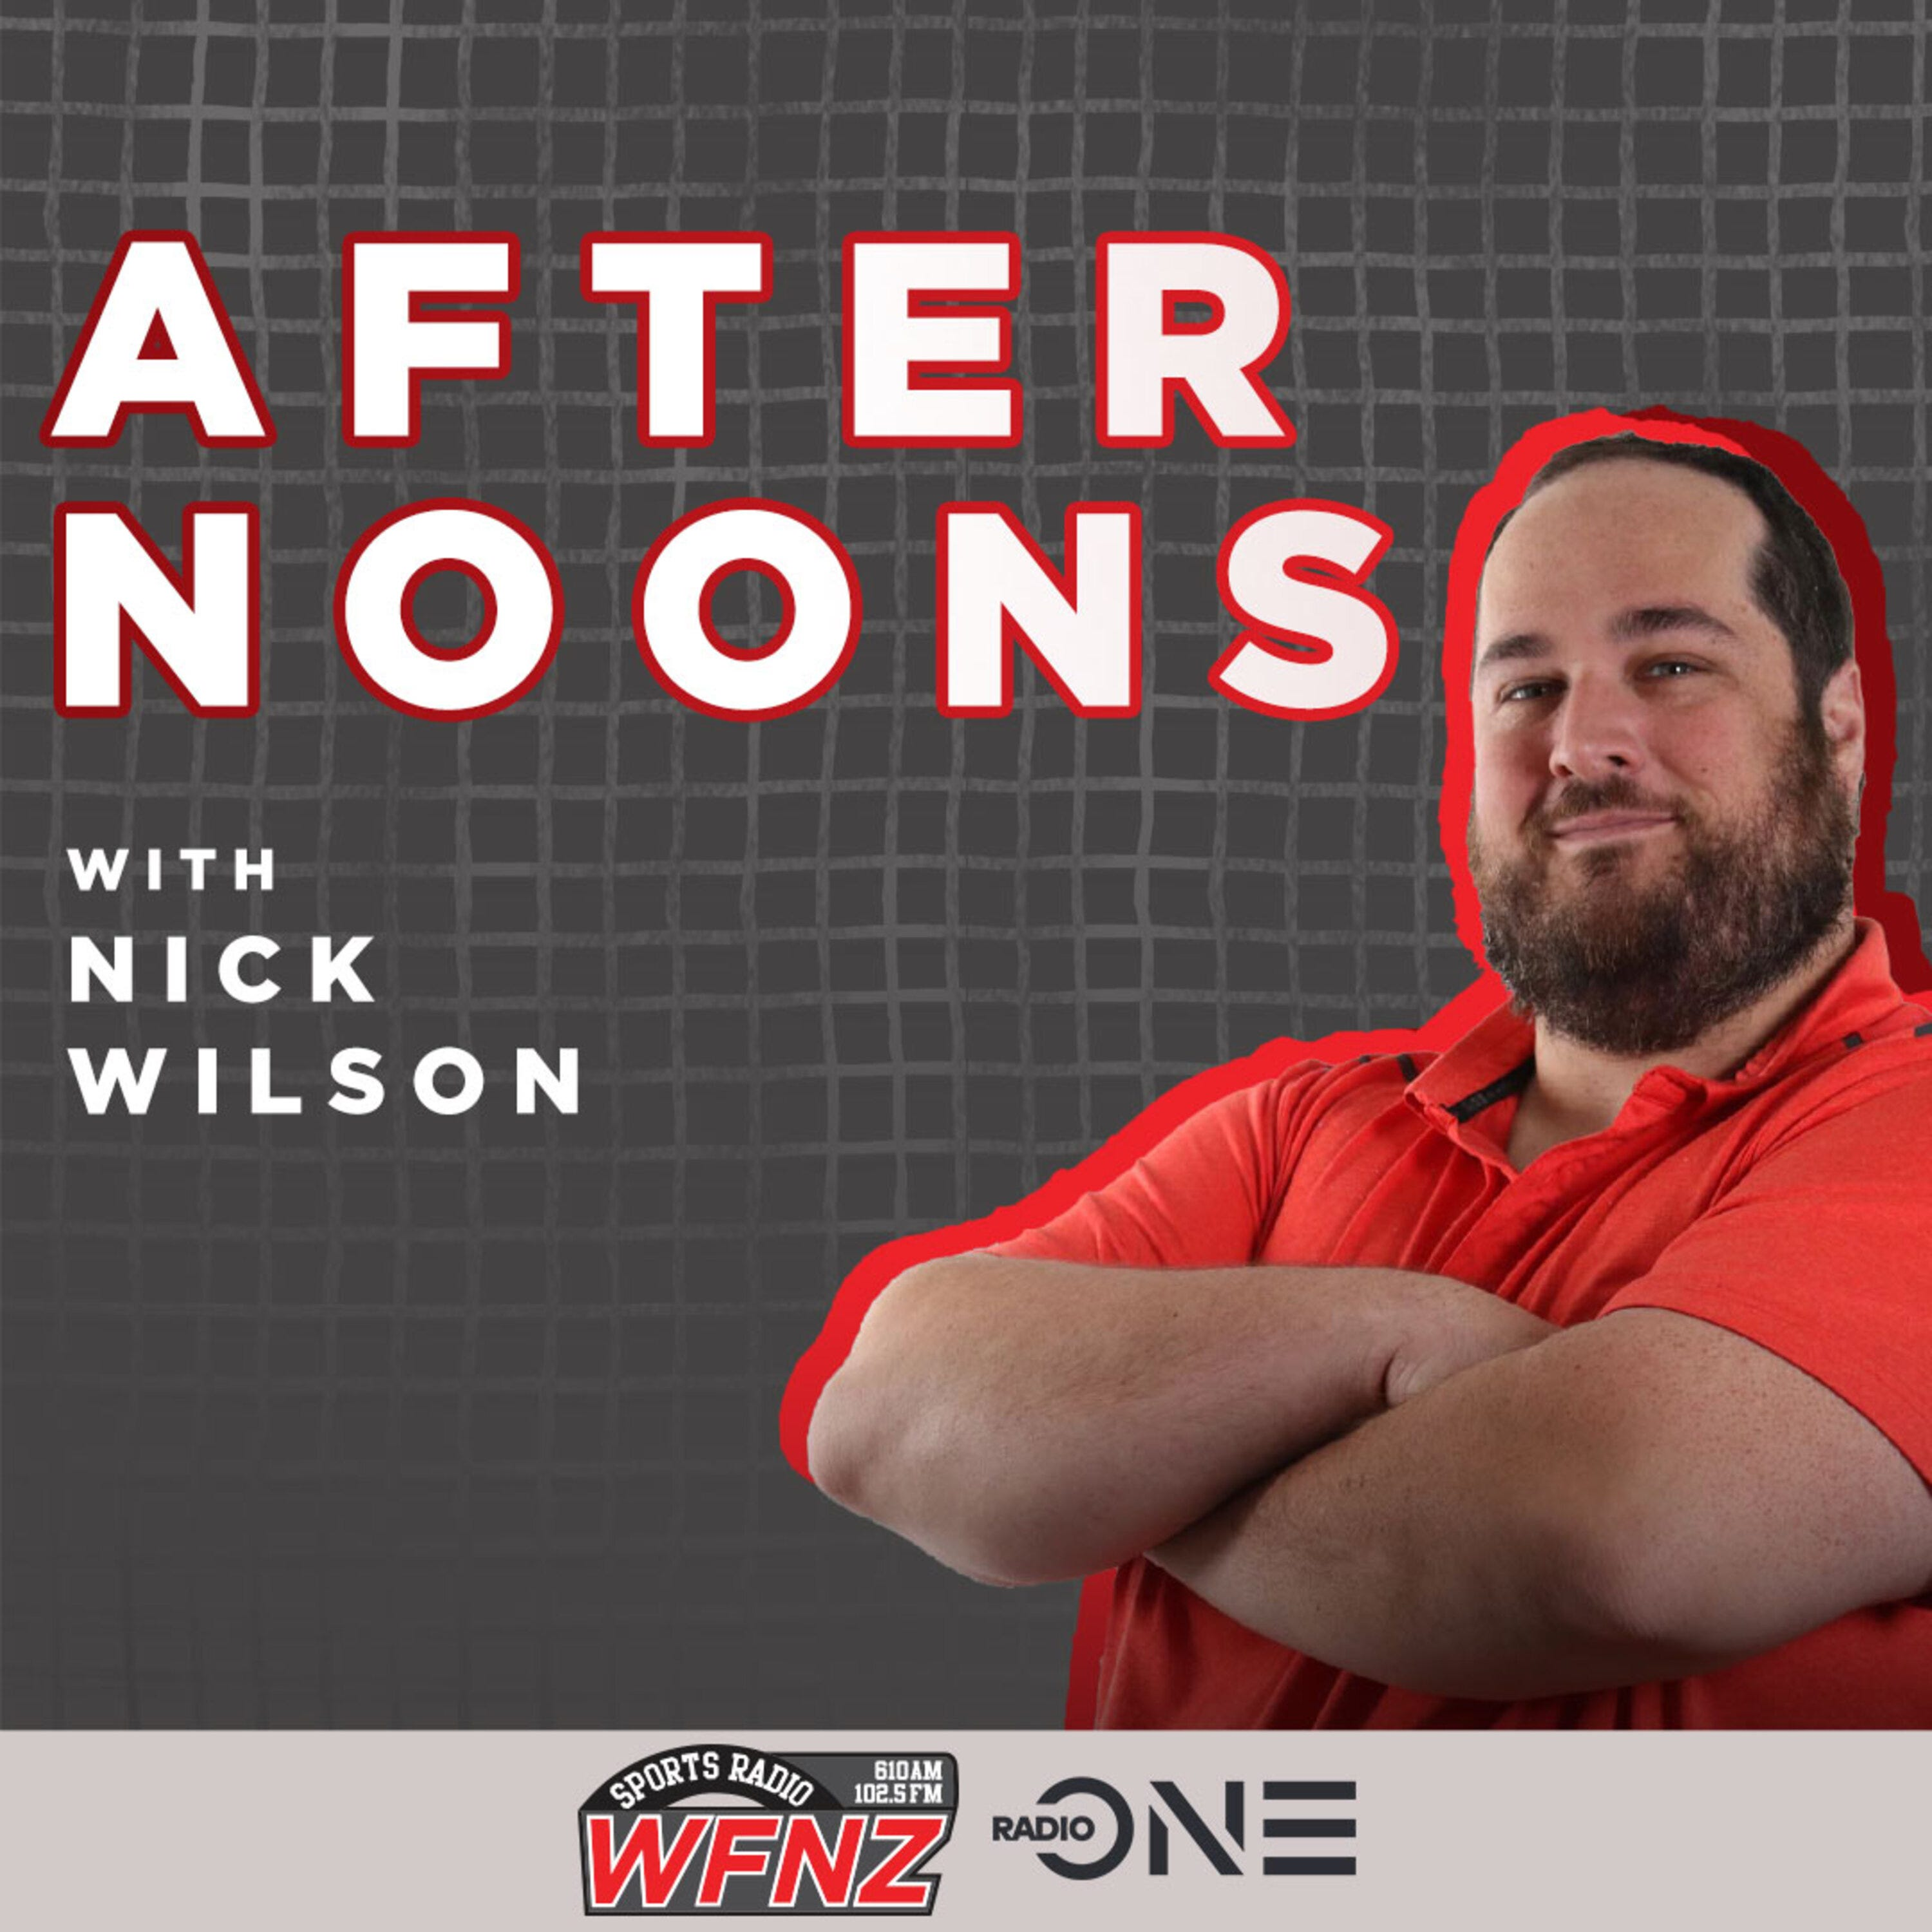 Afternoons with Nick Wilson